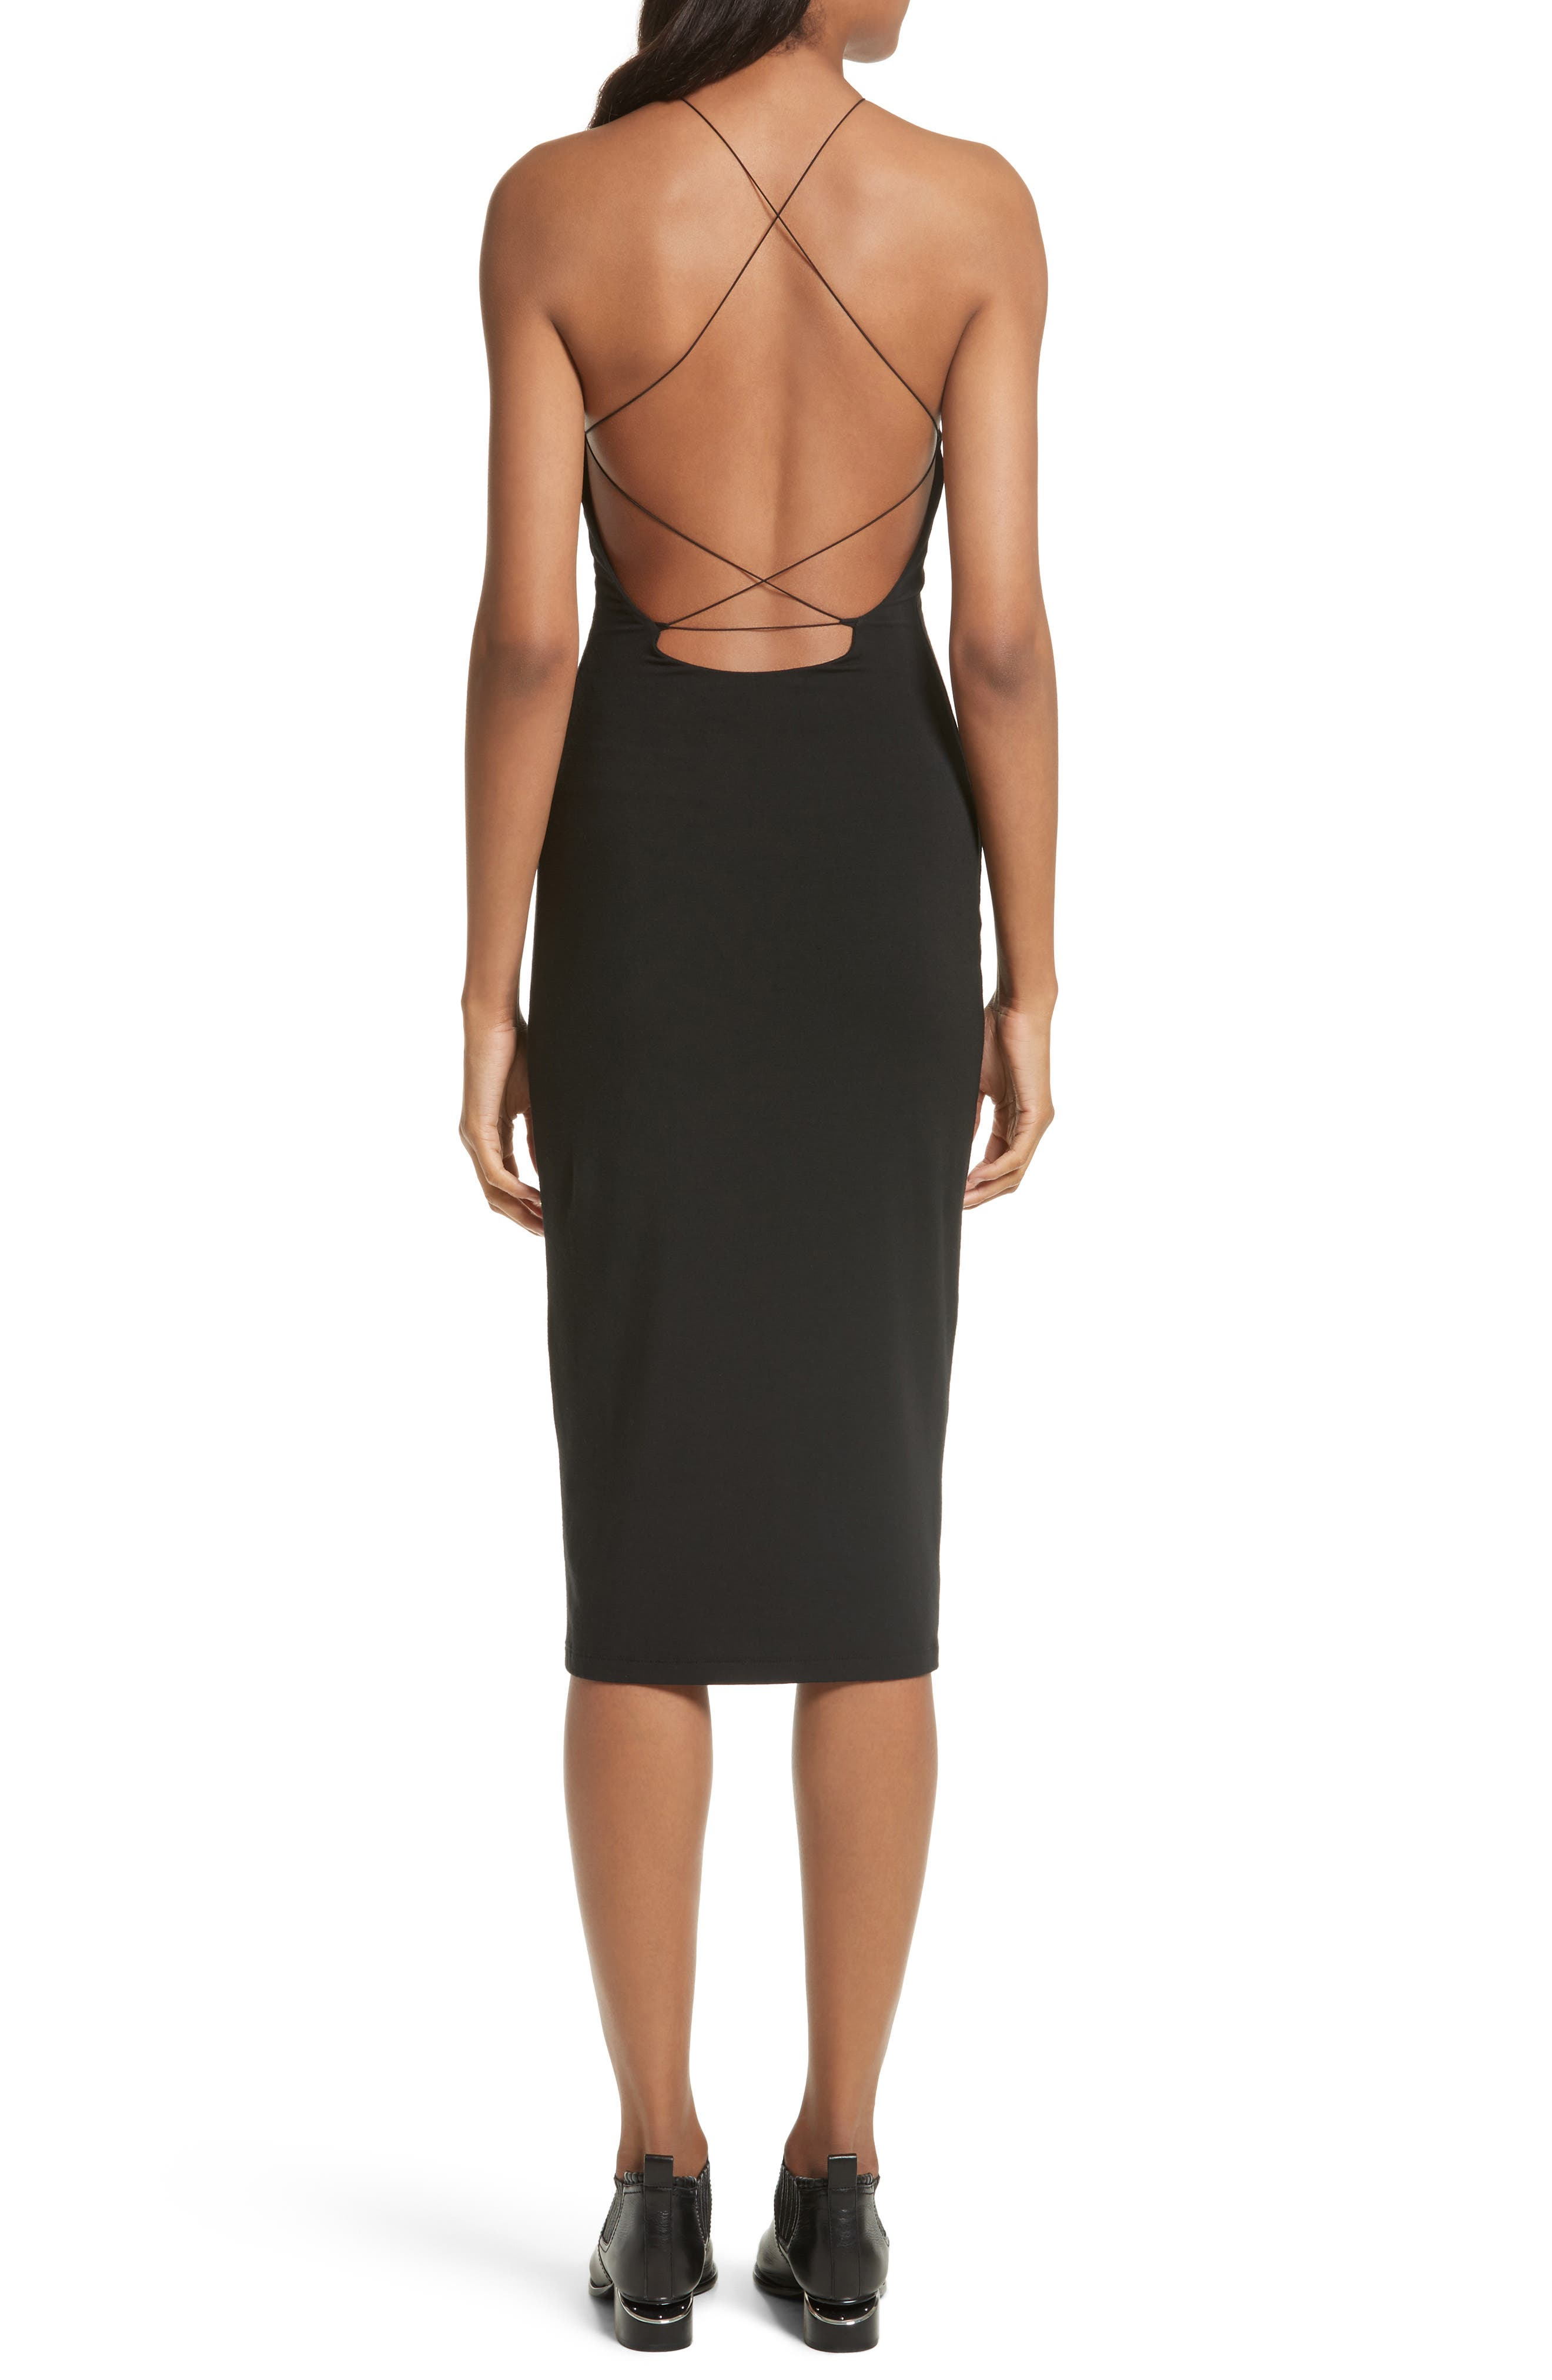 T by Alexander Wang Strappy Jersey Body-Con Dress,                             Alternate thumbnail 2, color,                             001